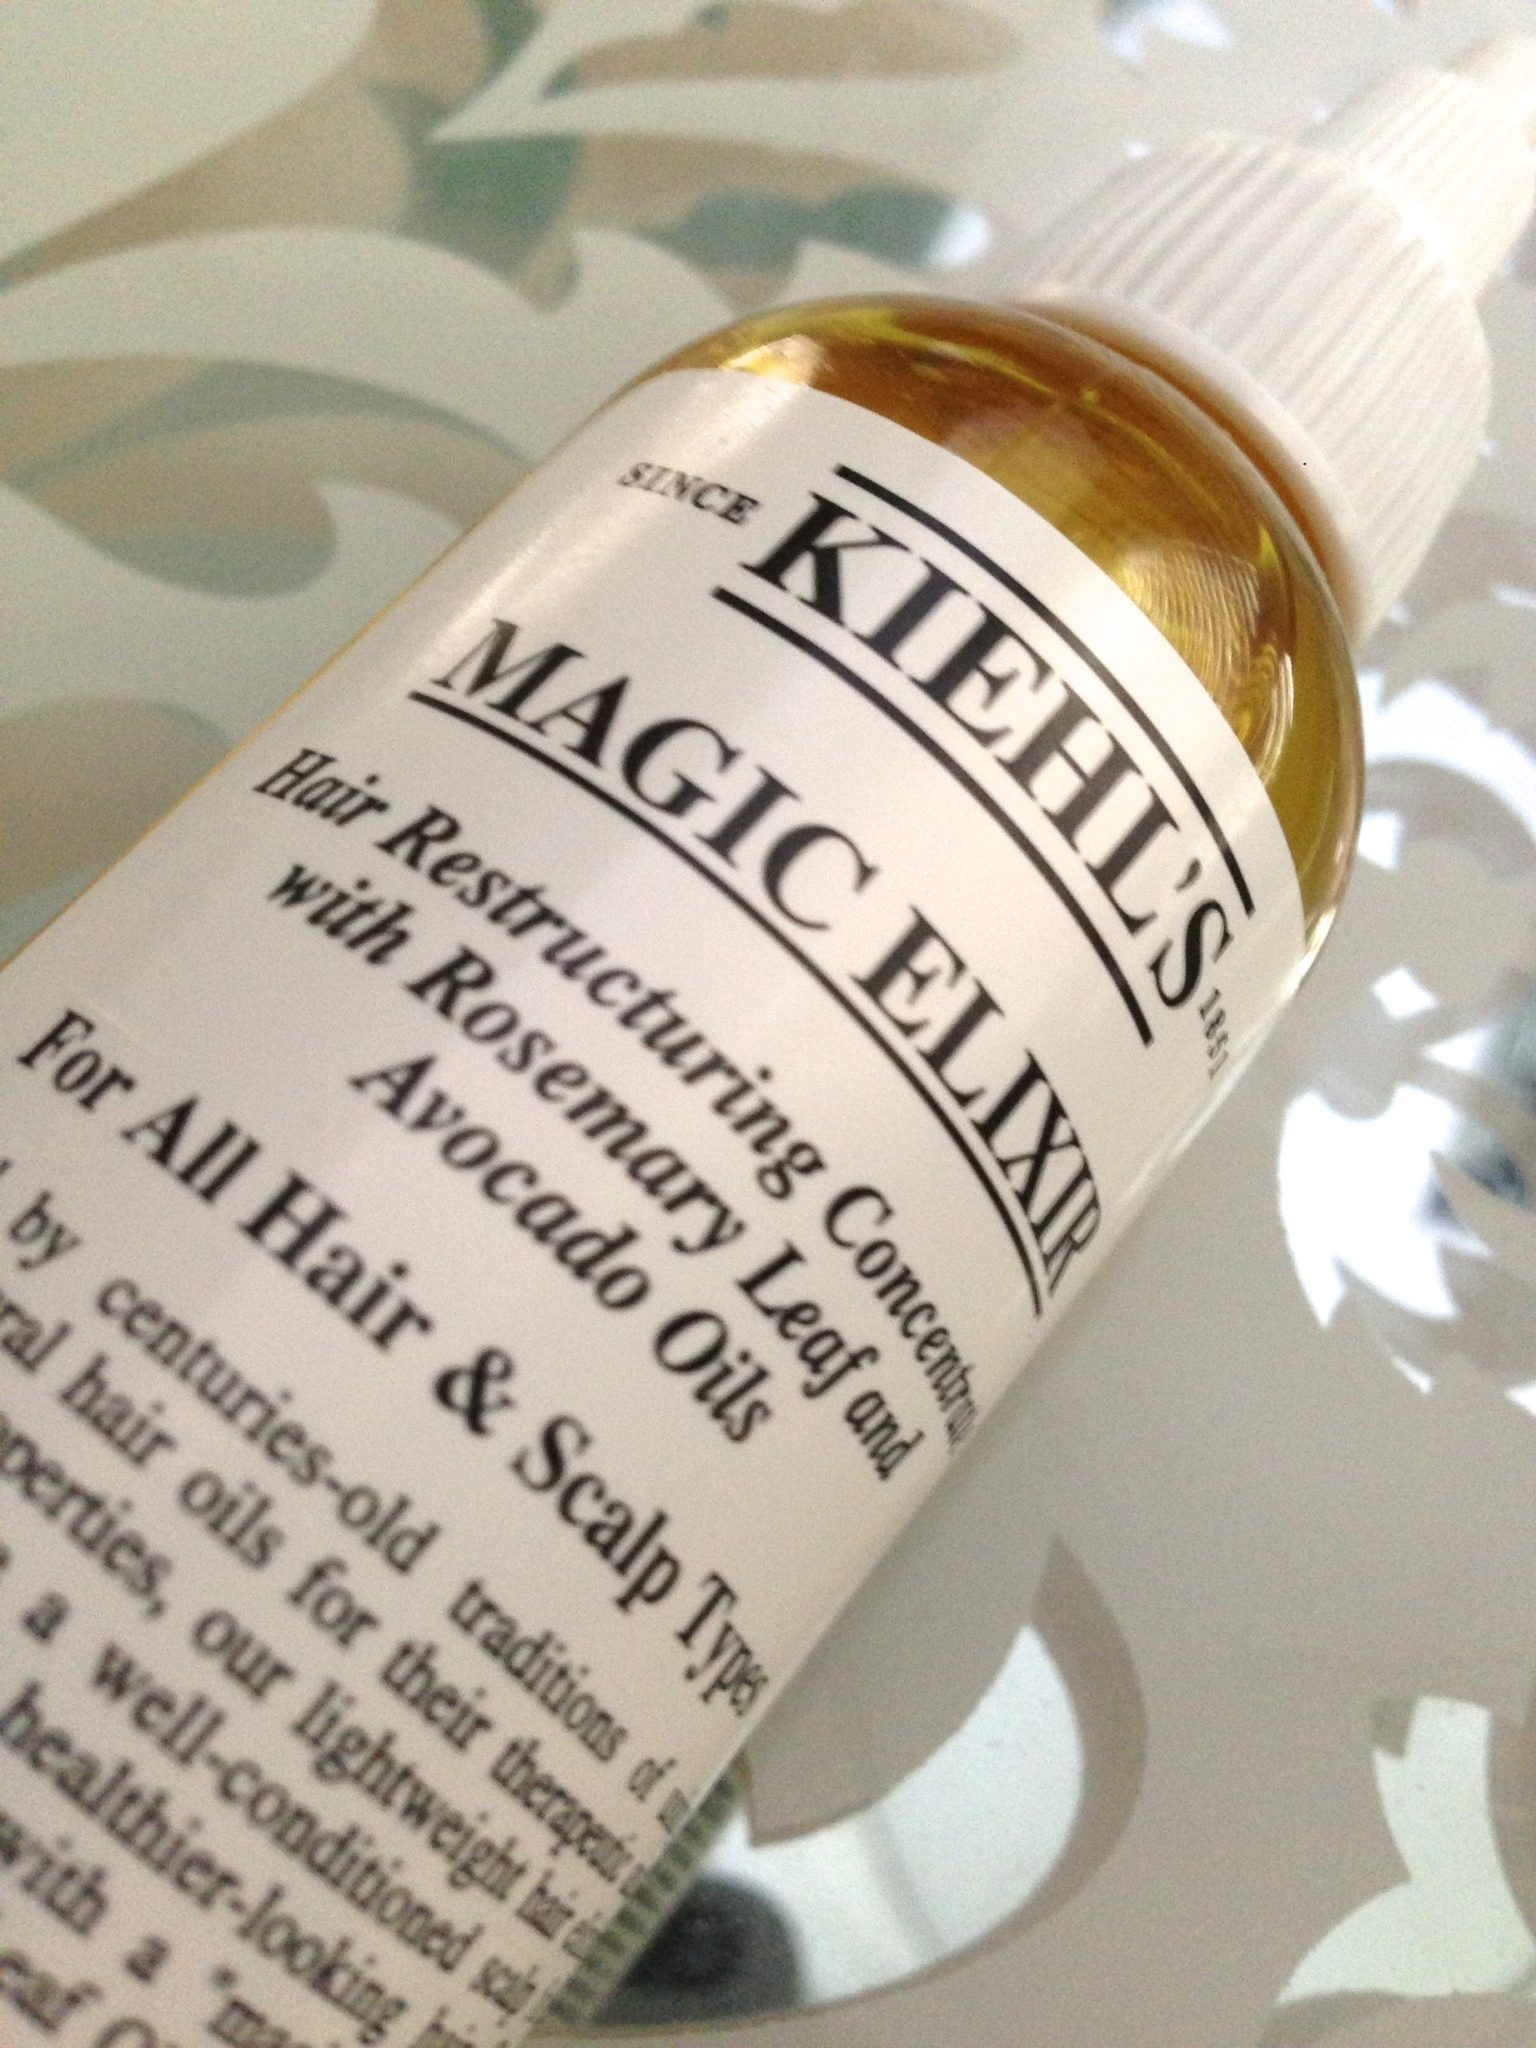 Kiehl's Magic Elixir Review | Simply Stine